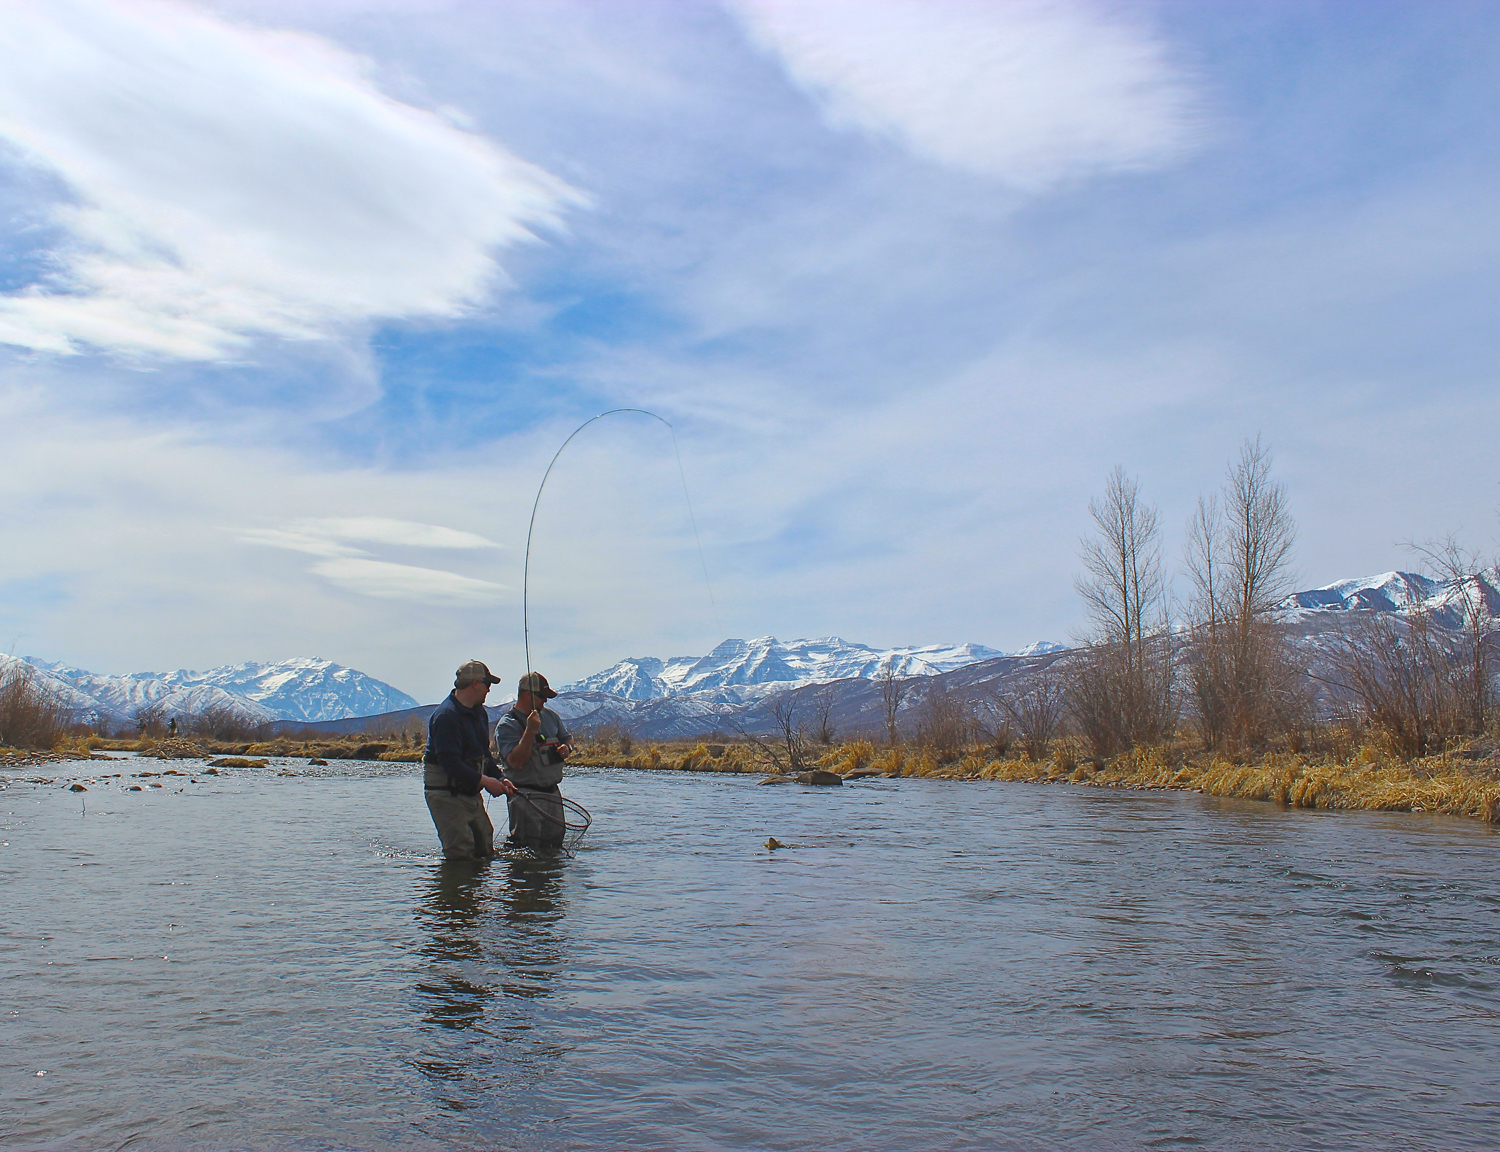 Hooked up on the Middle Provo, Dead Raccoon Hole